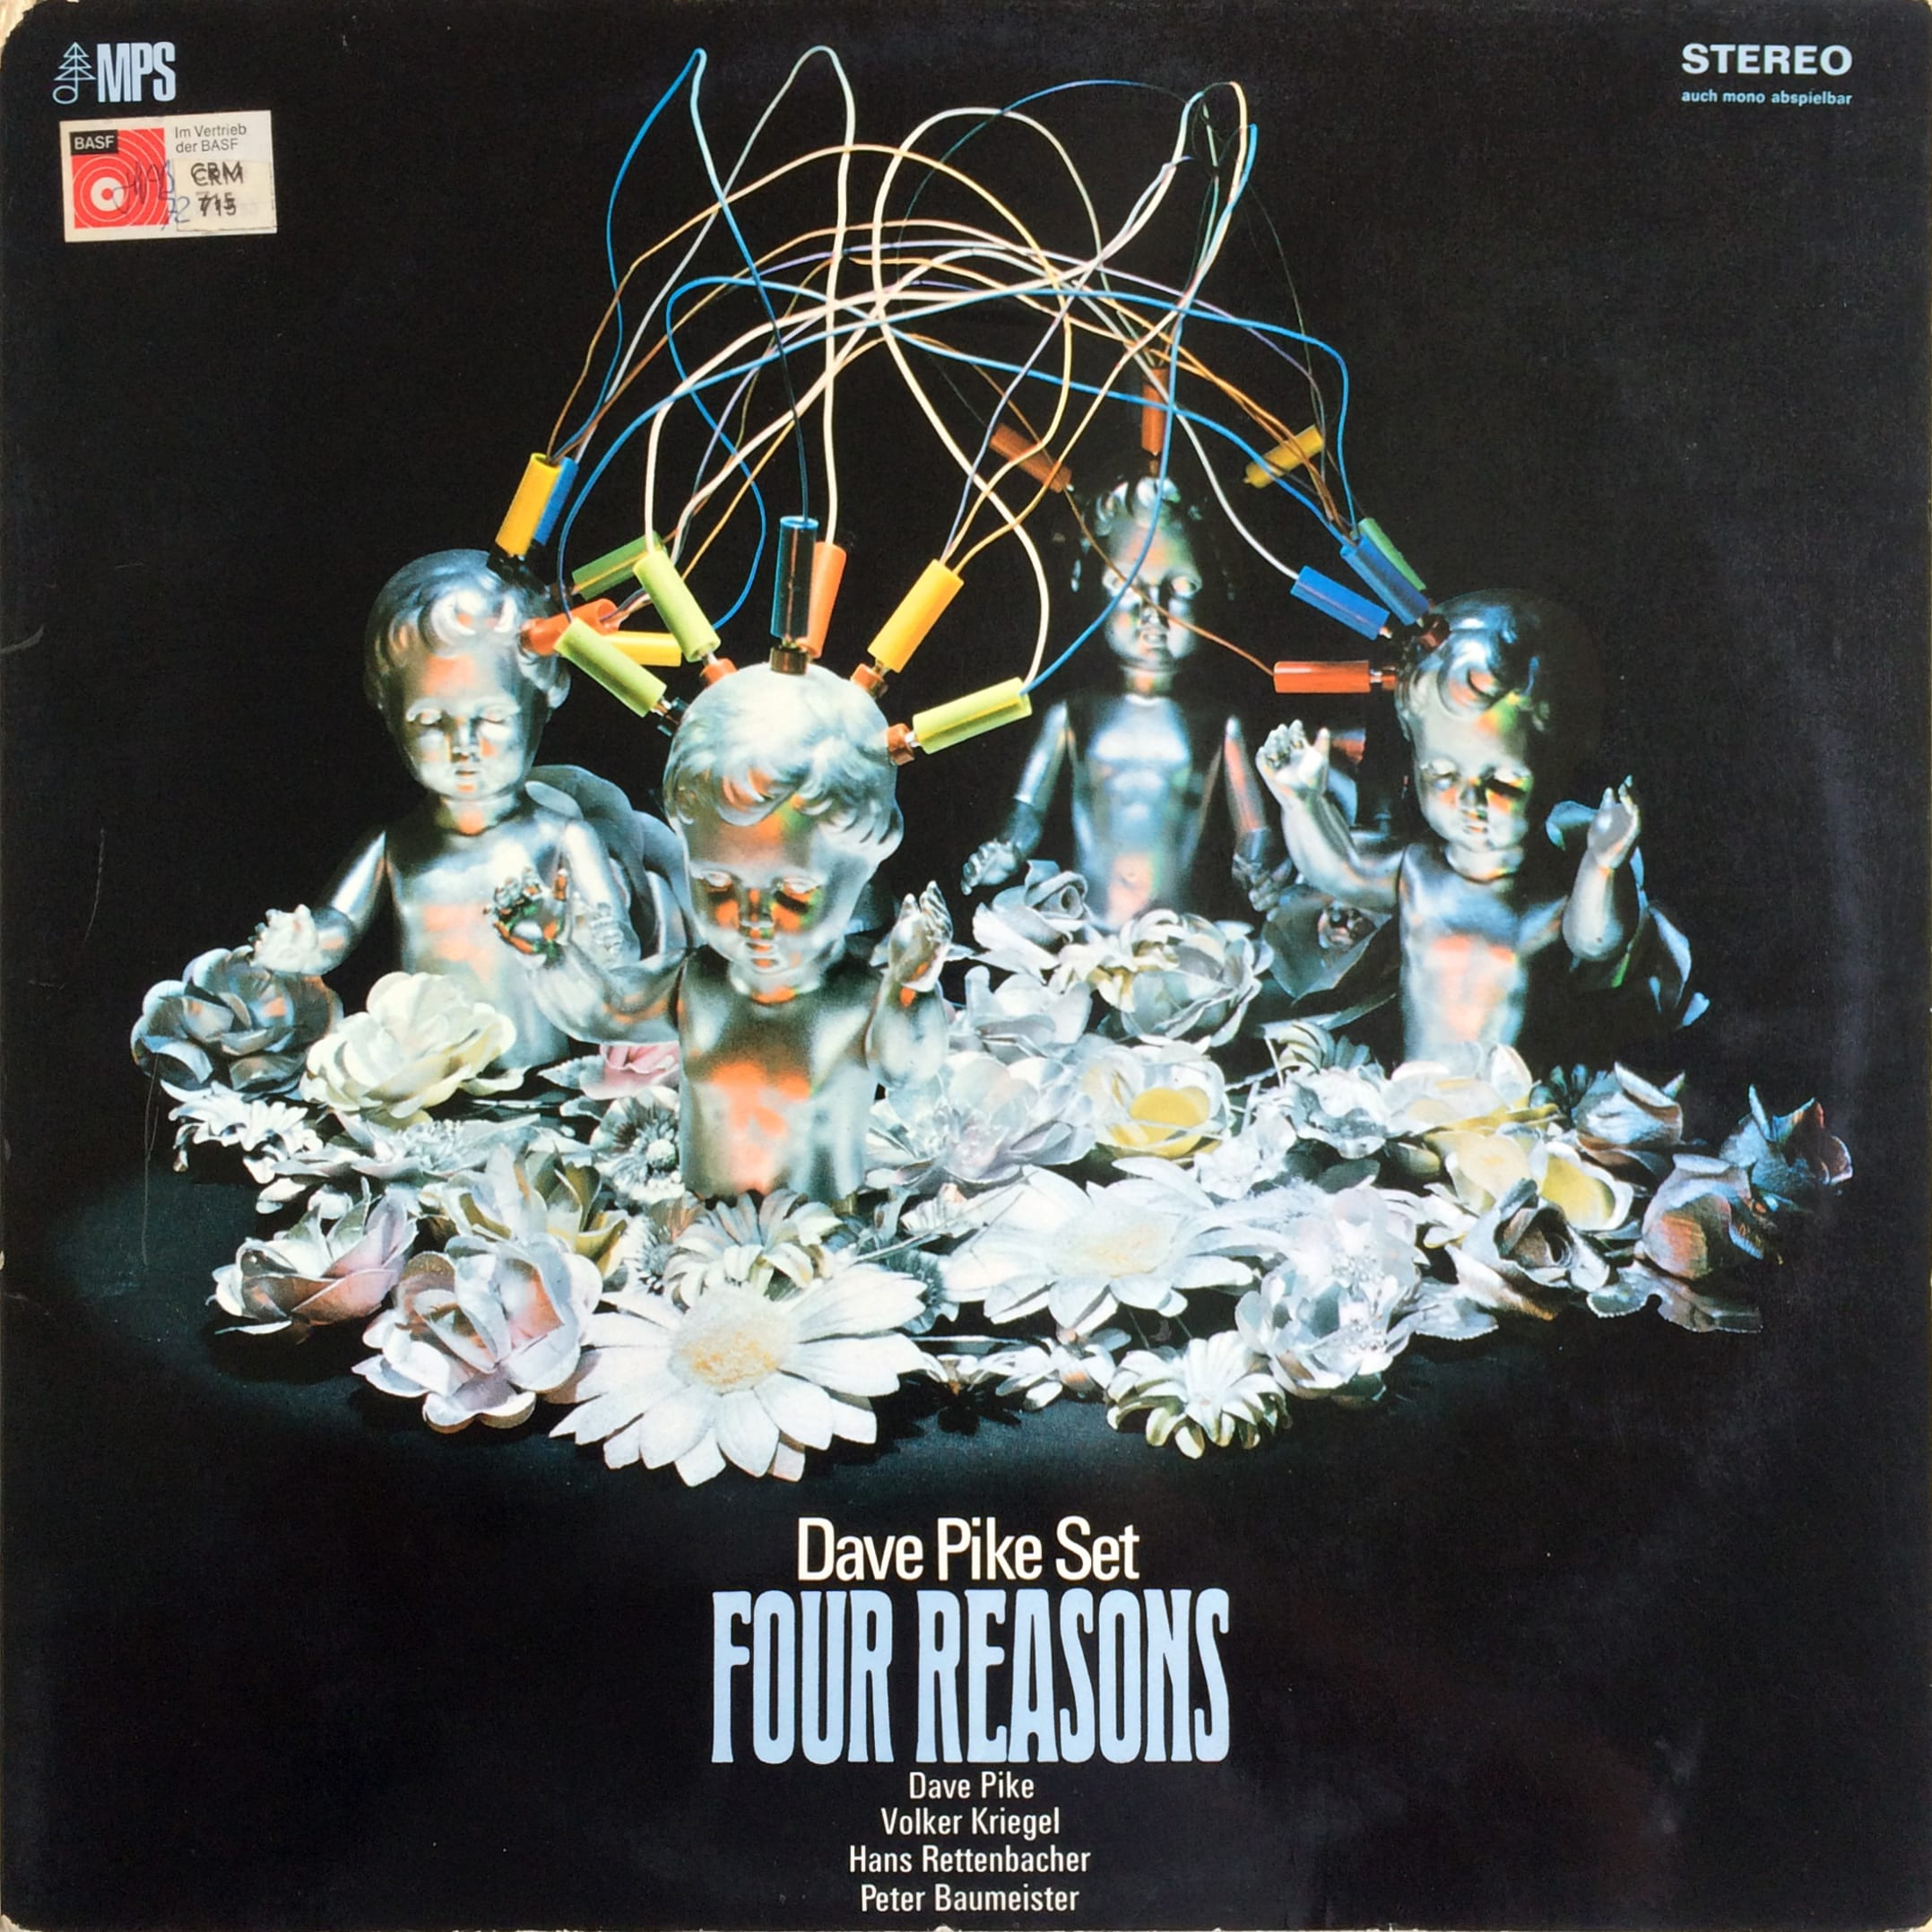 Dave Pike Set ‎– Four Reasons 1969 MPS Records CRM 715 ‎